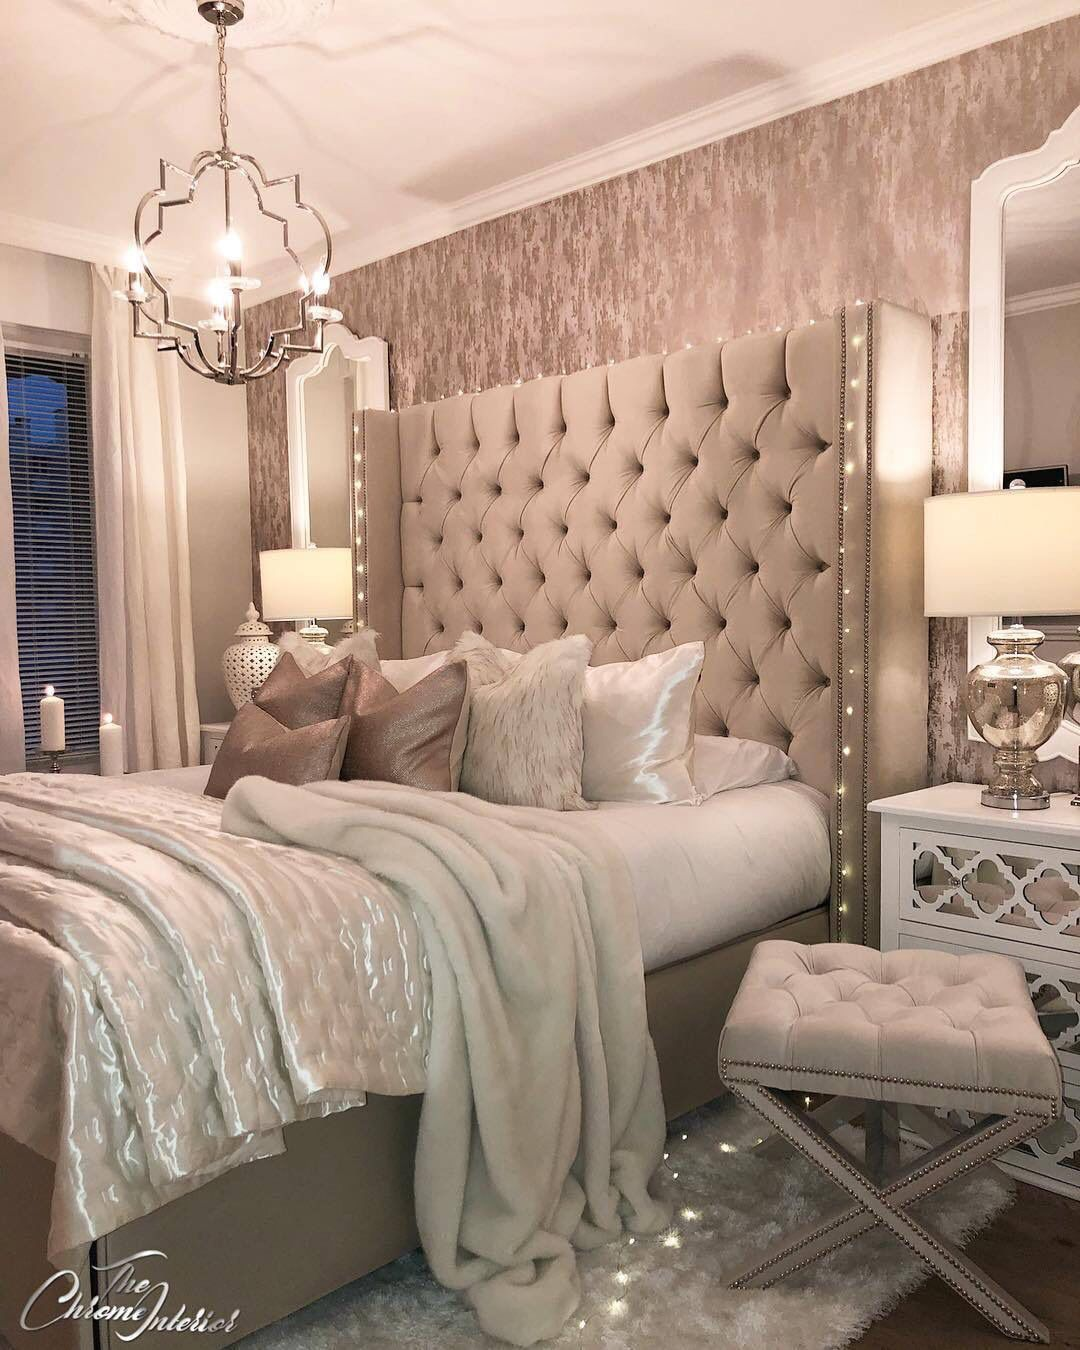 Pin By Nandeezy On Decor Master Bedrooms Decor Luxurious